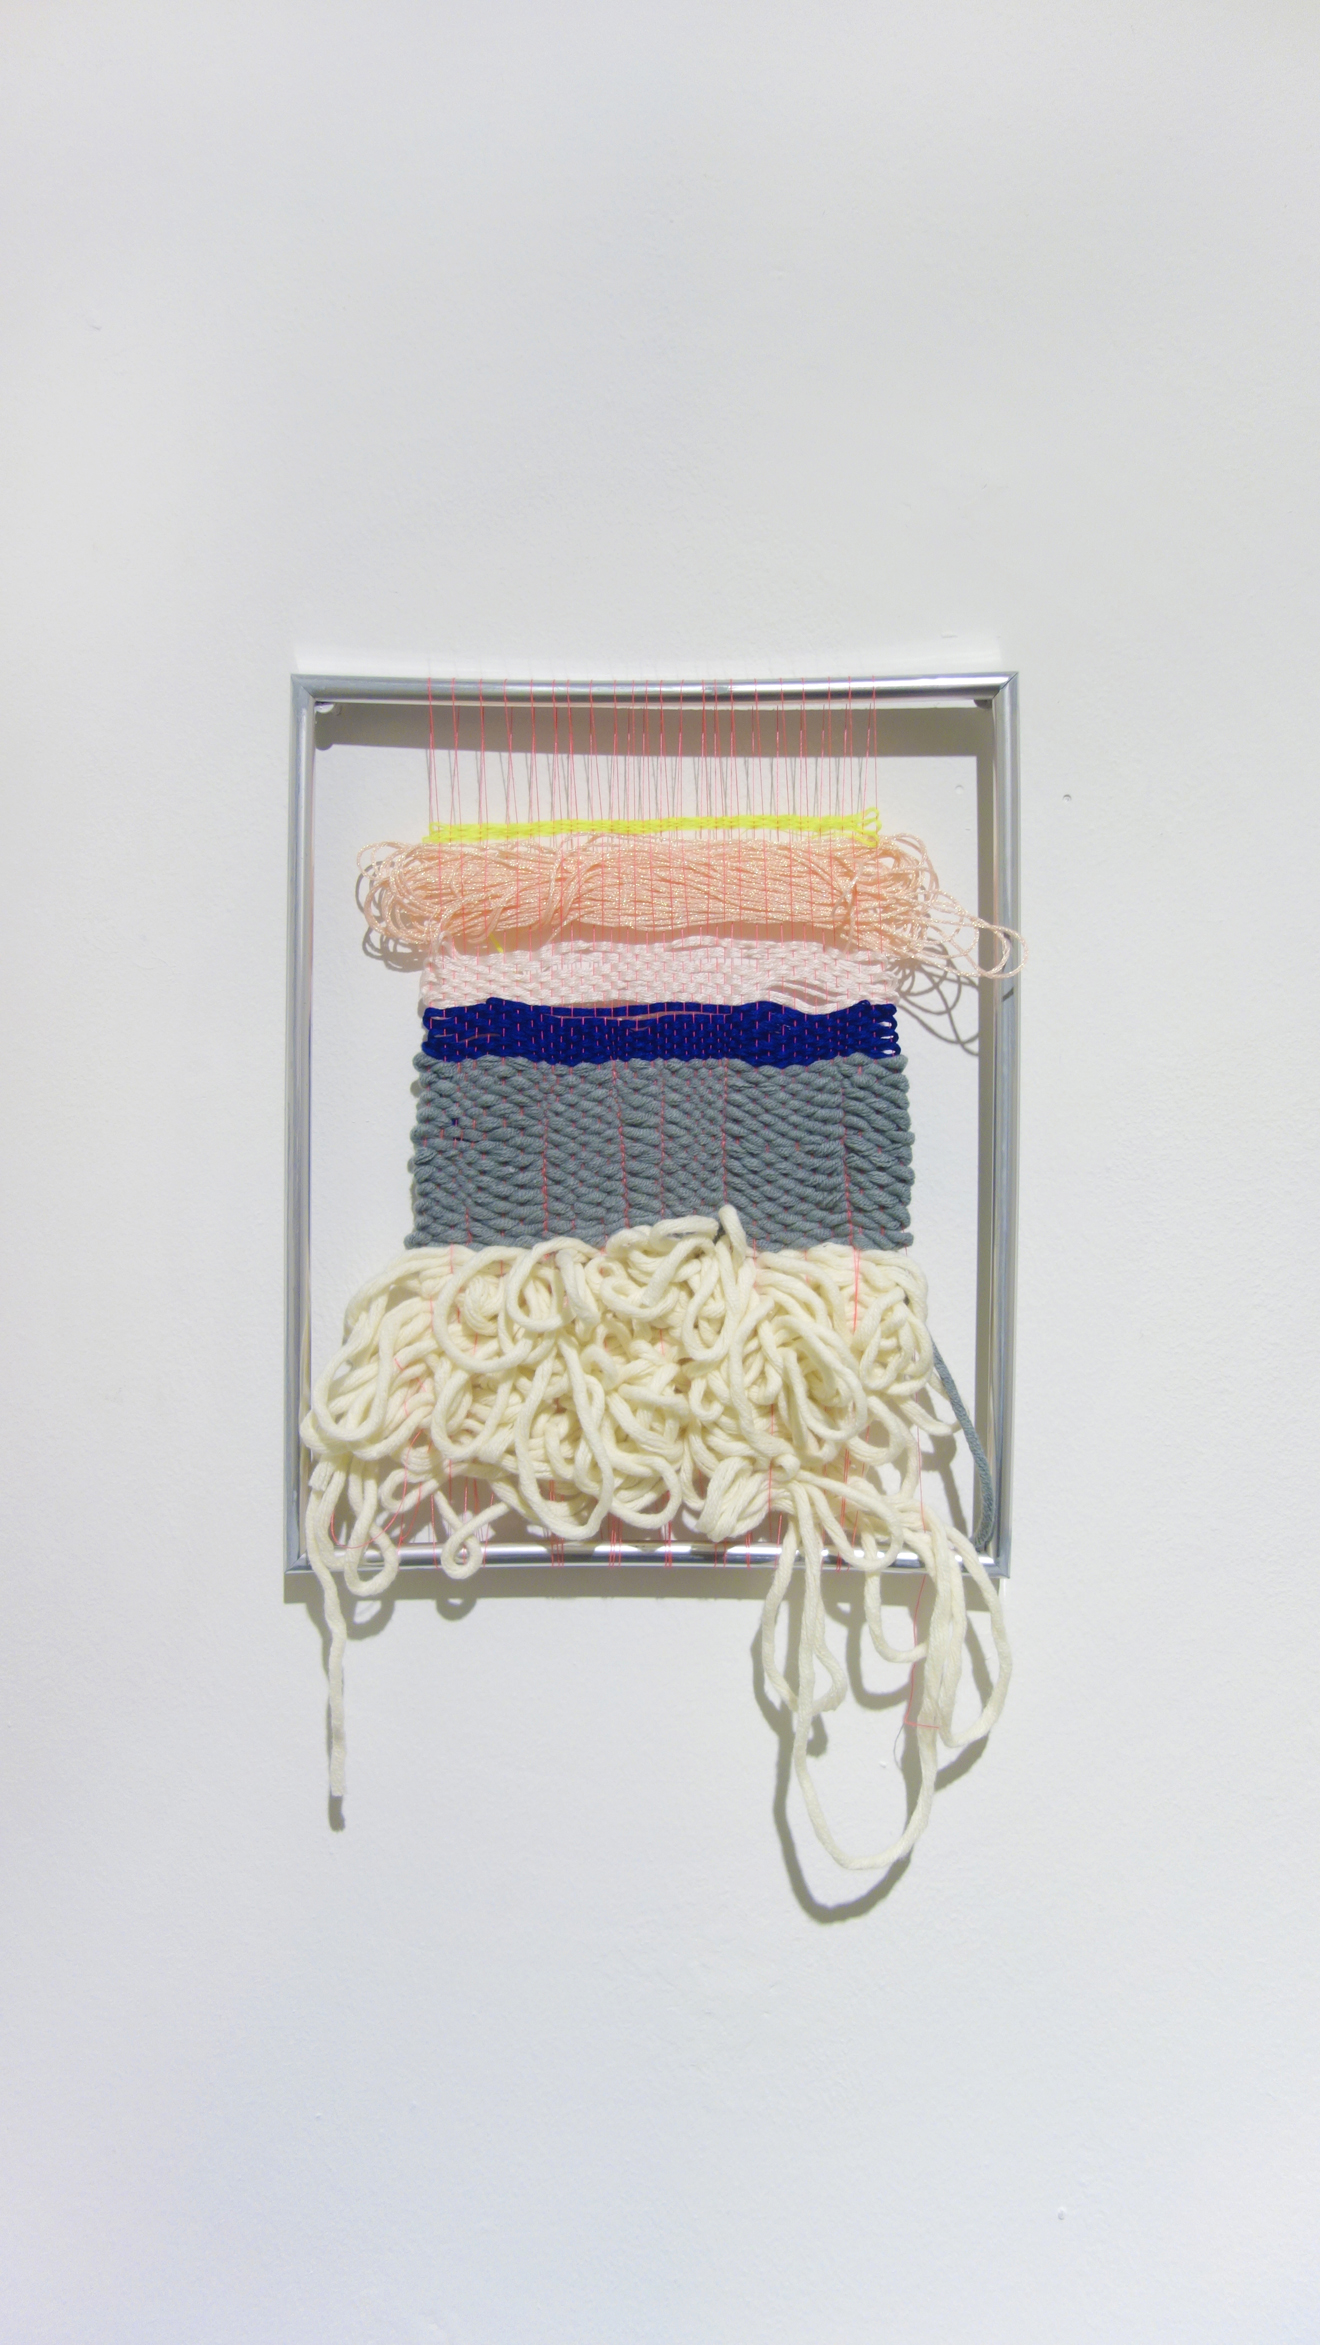 Izziyana Suhaimi, In Between Forgetting, 2015, Cotton and polyester thread woven on found frame, H34 x W21.5 cm.jpg